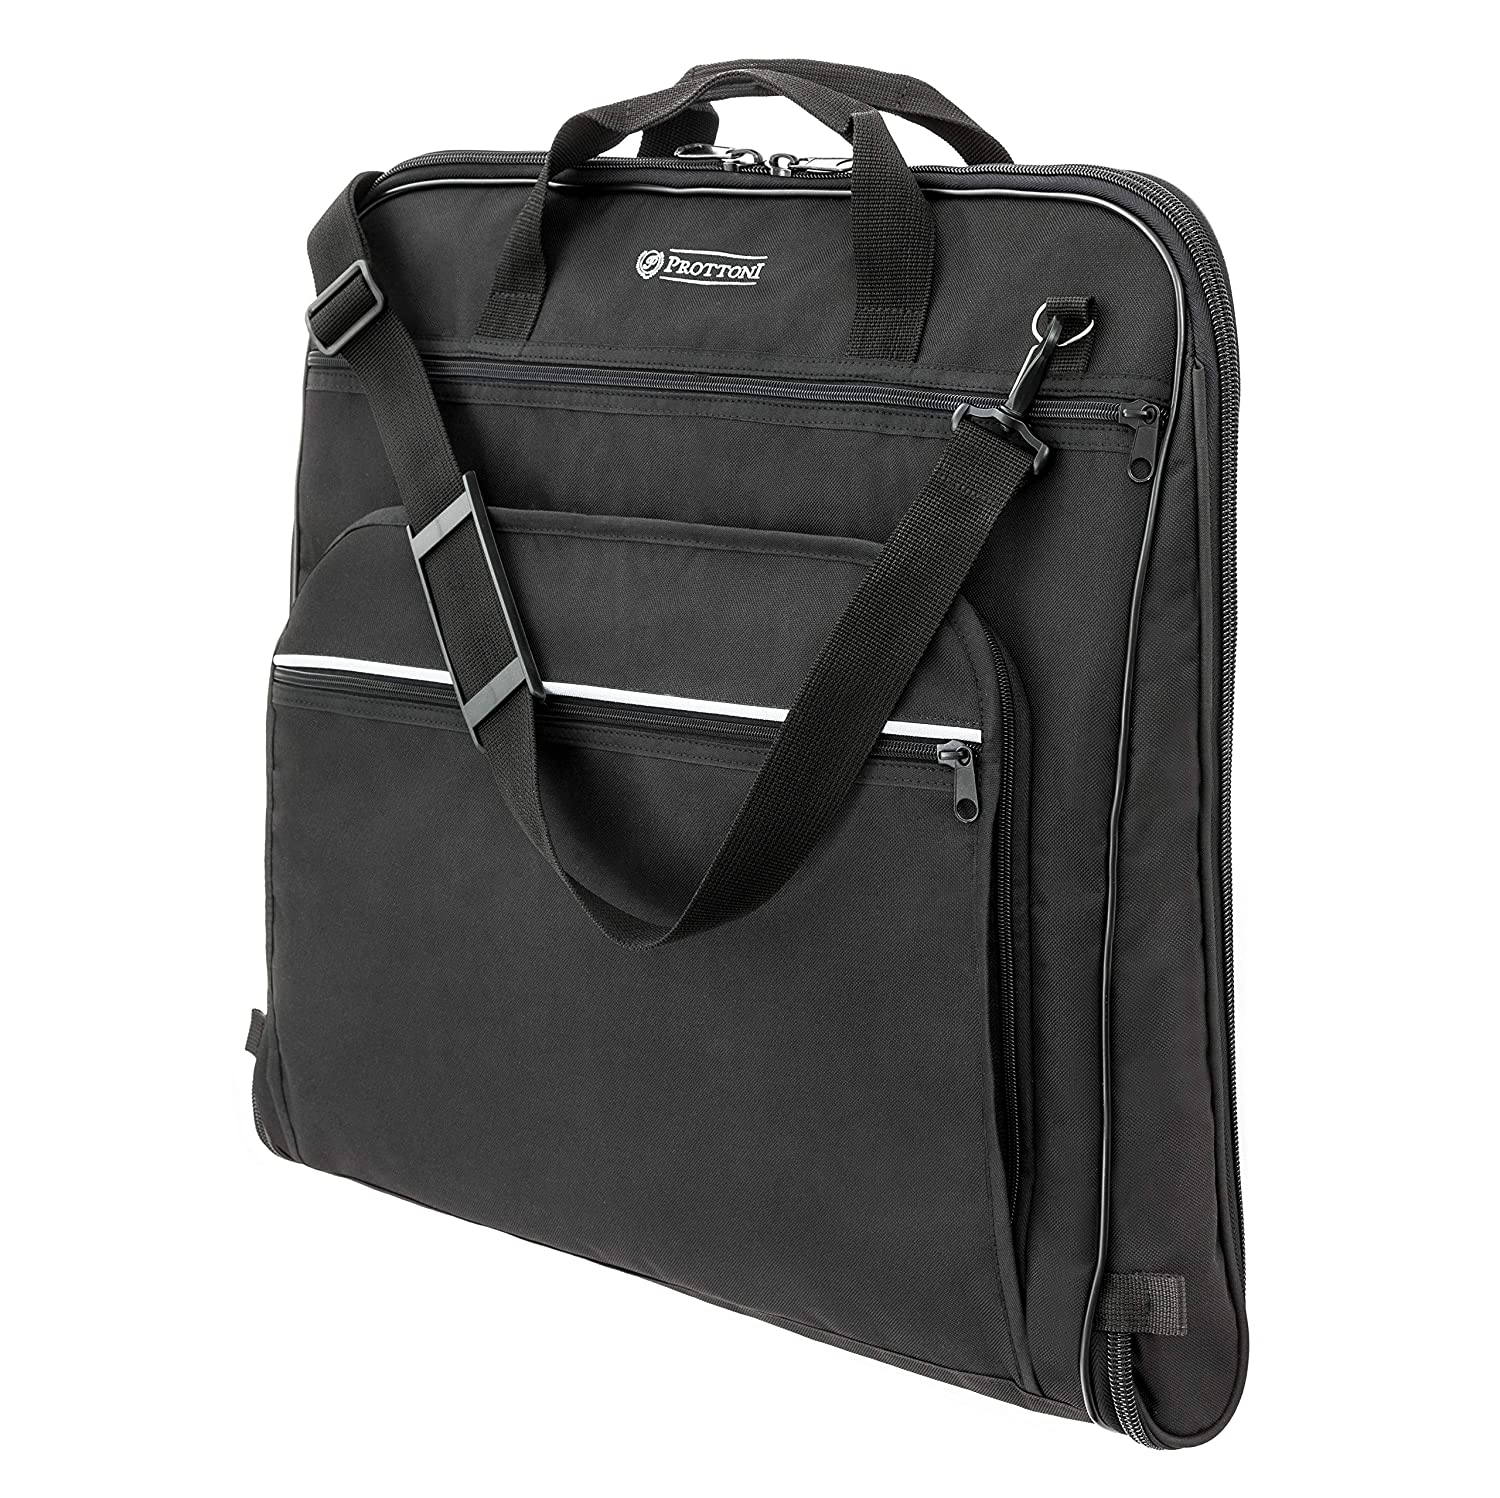 43c13fca6a4c Prottoni 44-inch Garment Bag for Travel – Water-Resistant Carry-On Suit  Carrier